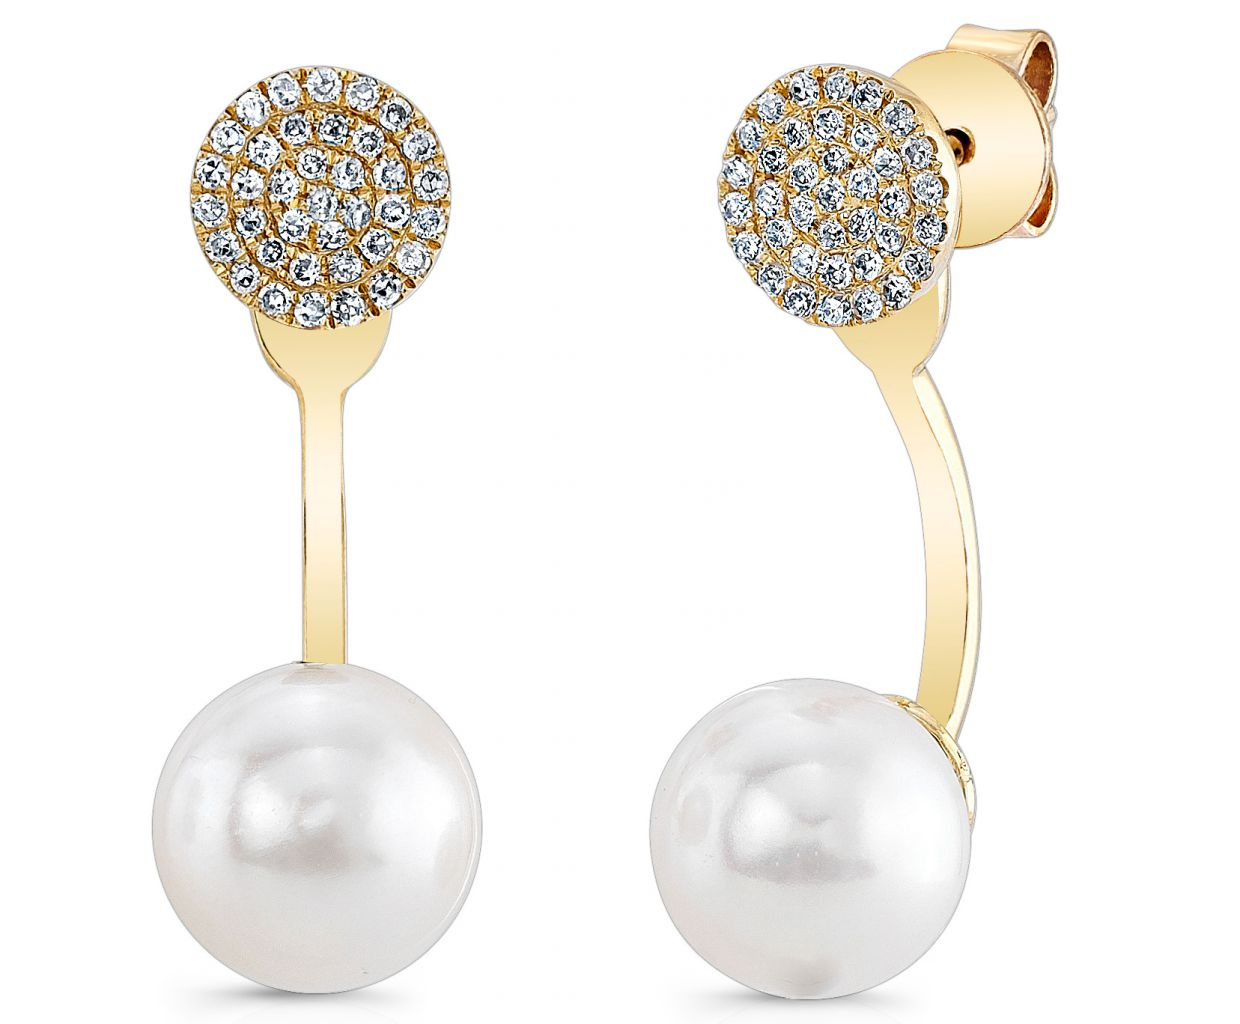 Majolie Collections pearl and diamond earring jackets